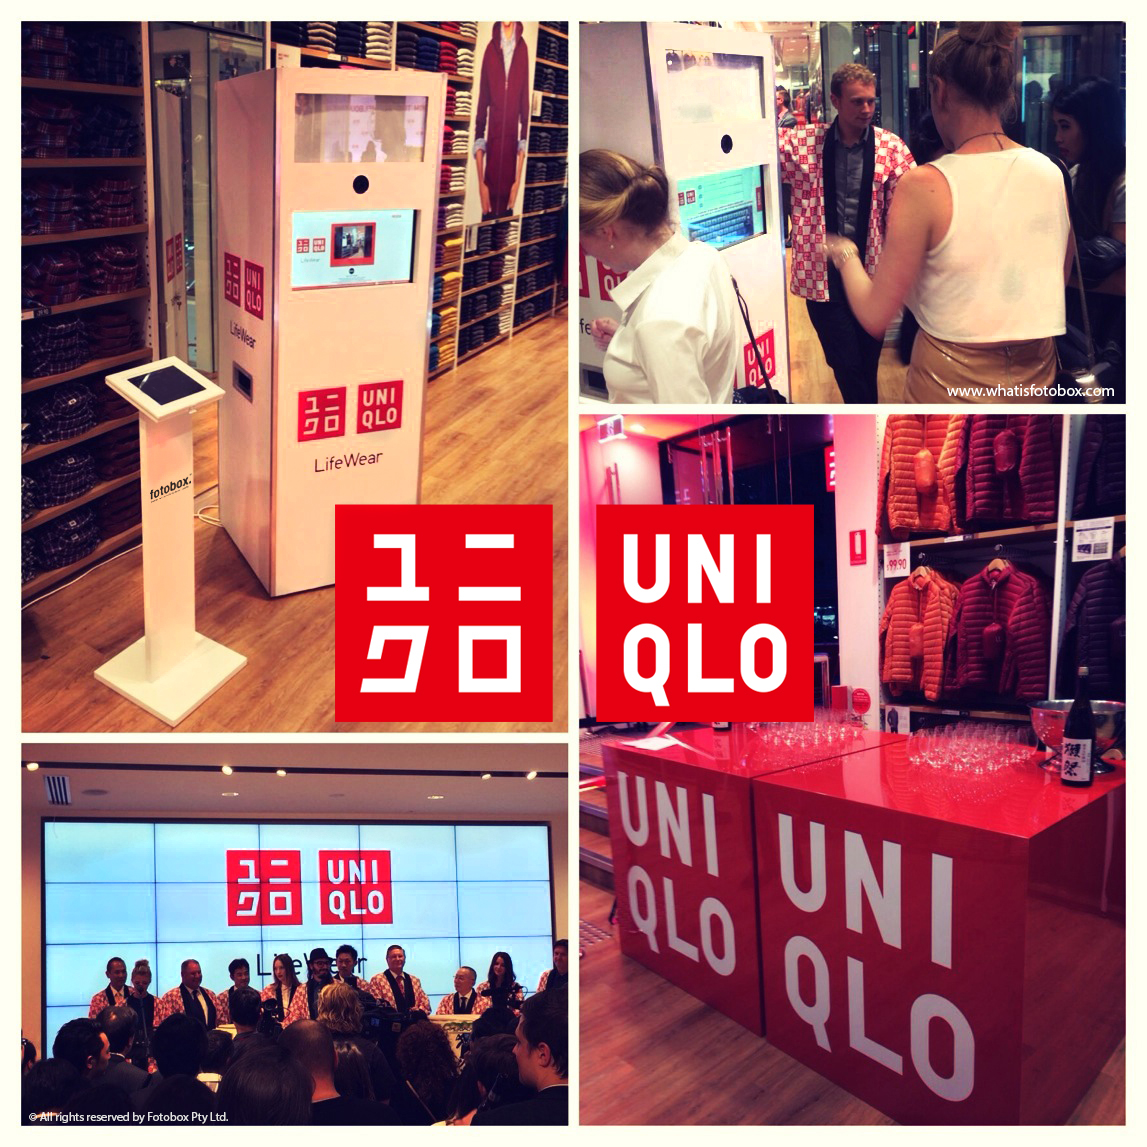 Fotobox Uniqlo.JPG